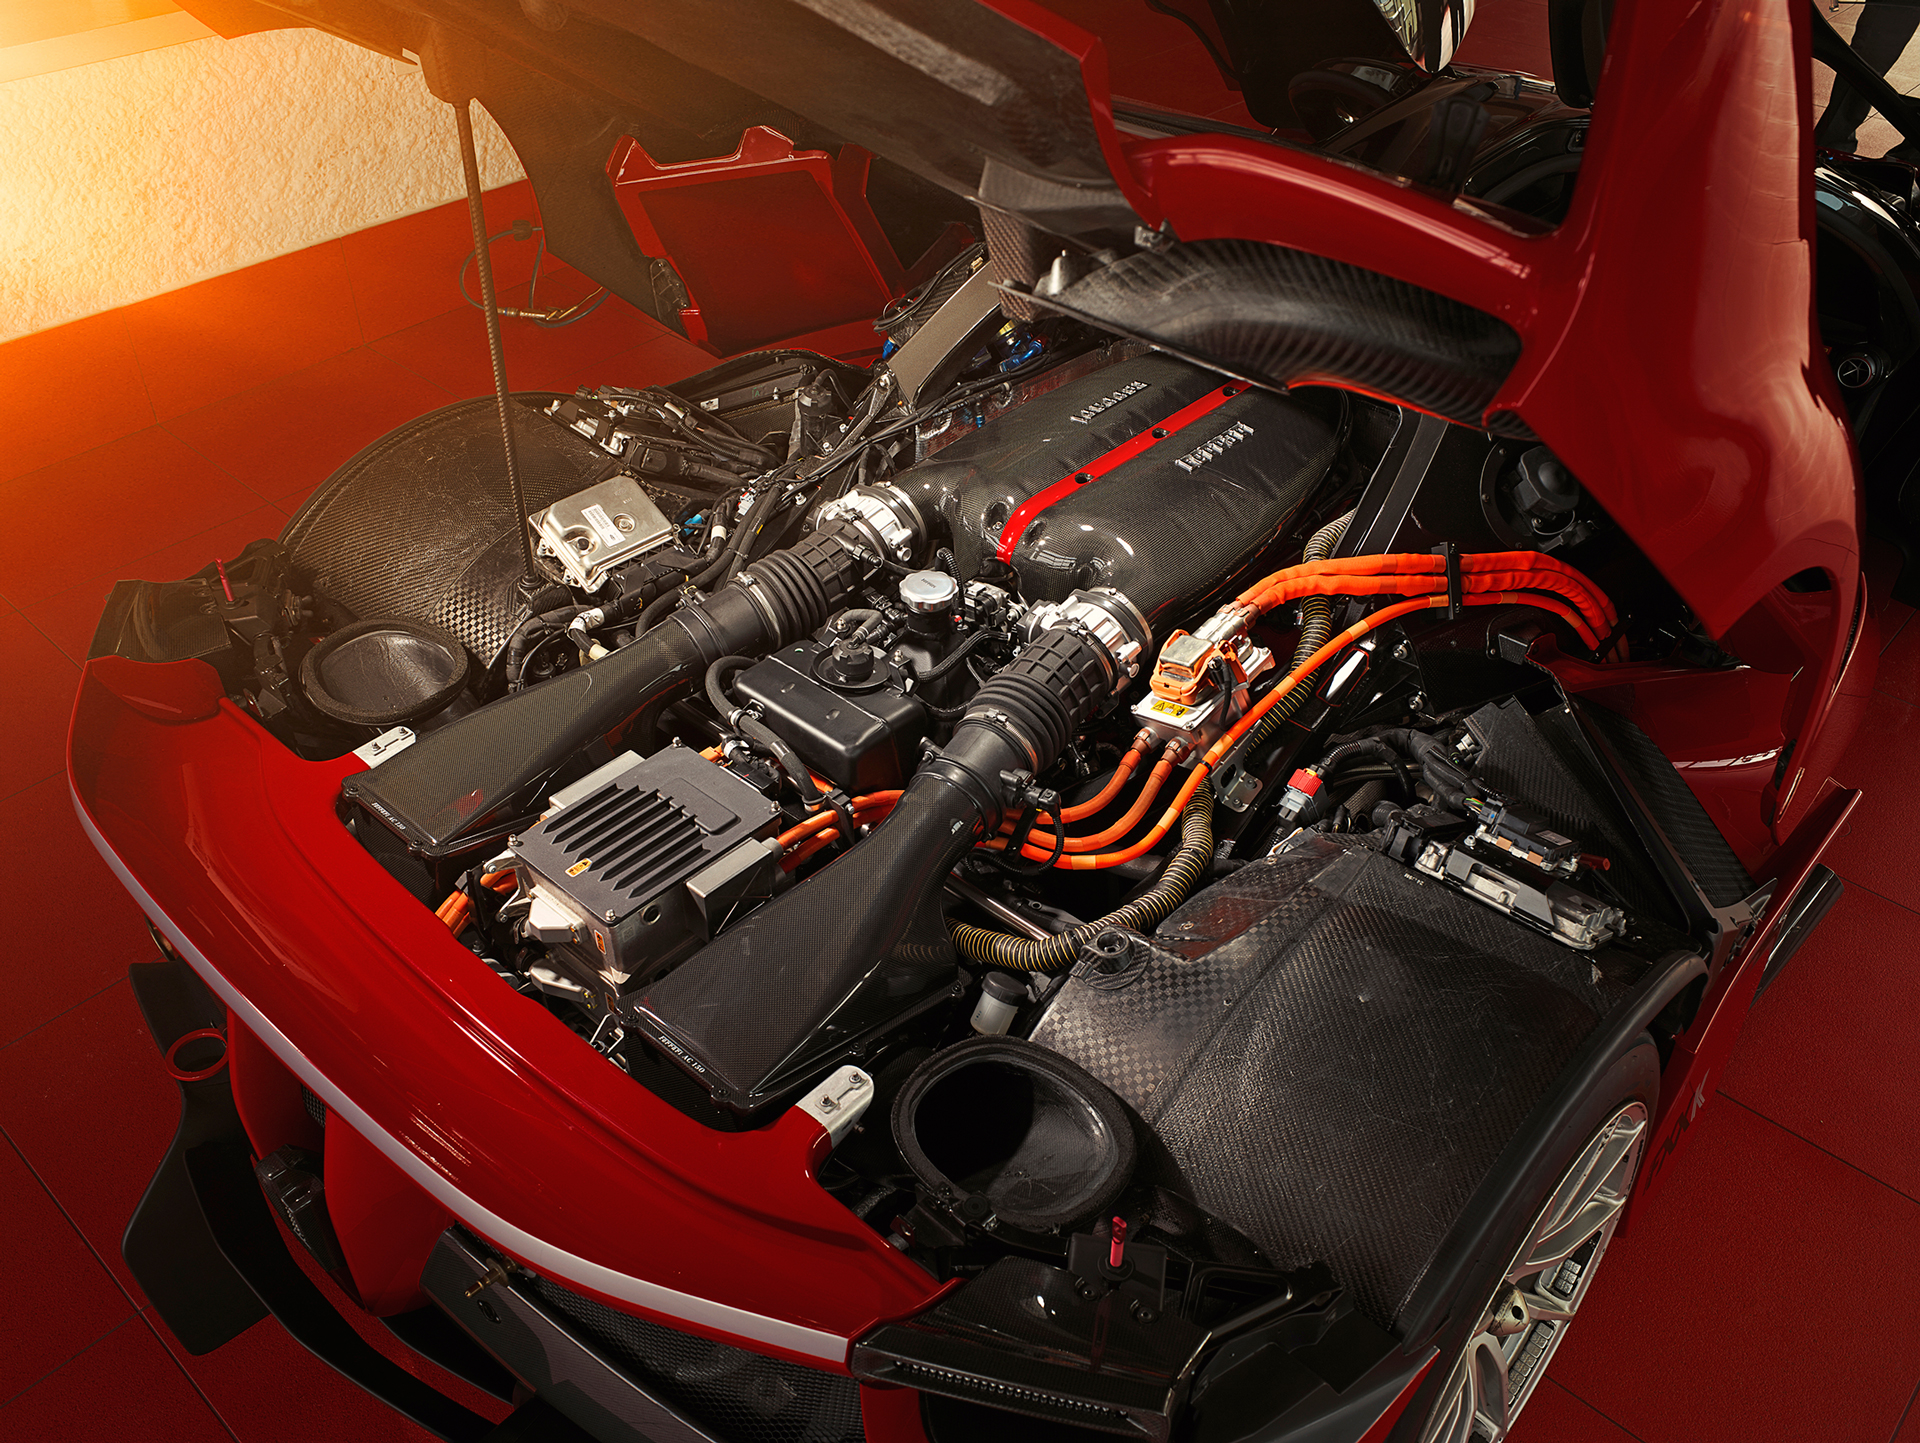 Ferrari FXX K - 2015 - under the hood - V12 - engine / moteur